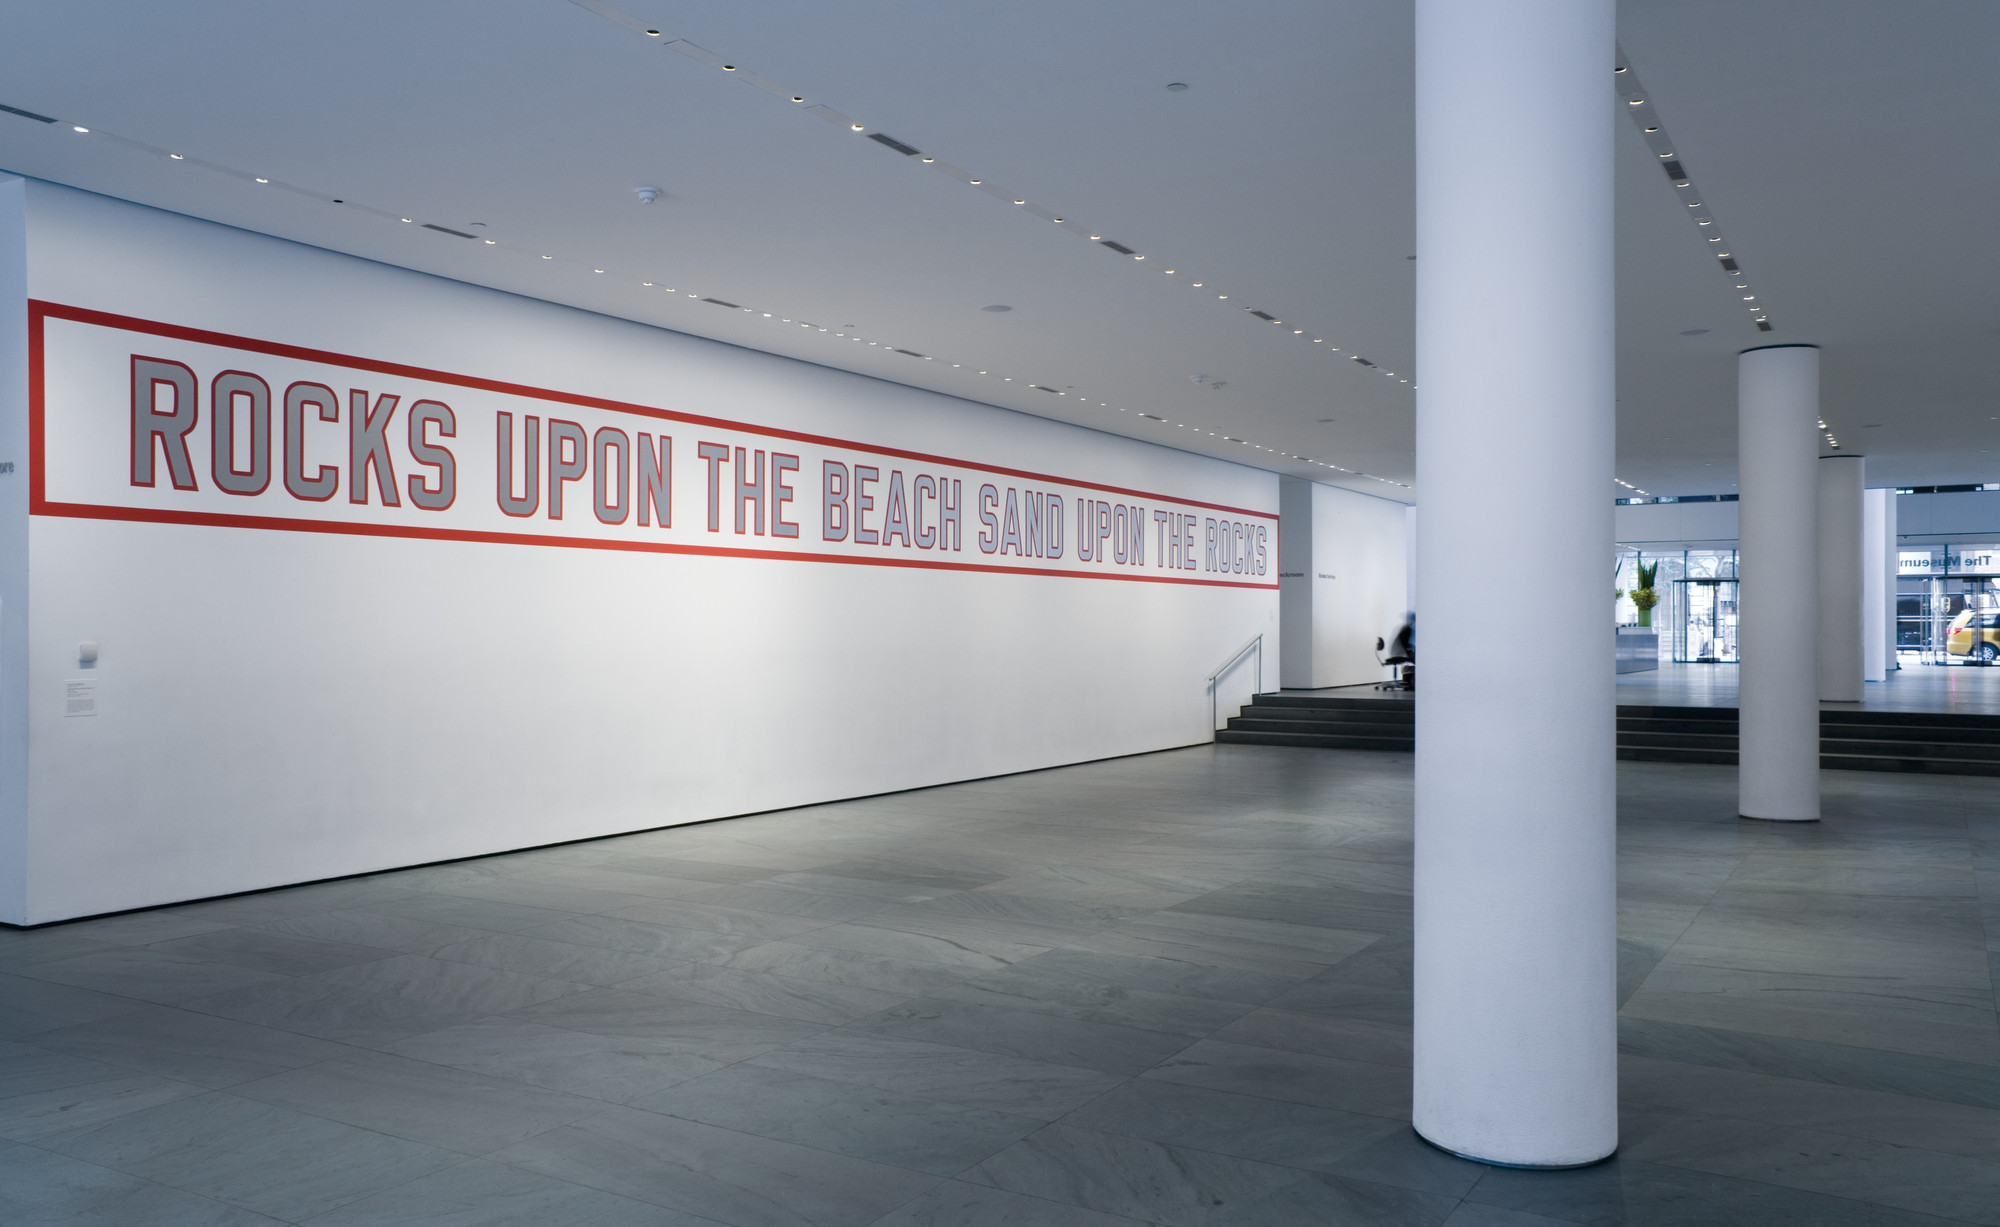 Lawrence Weiner. ROCKS UPON THE BEACH SAND UPON THE ROCKS. 1988